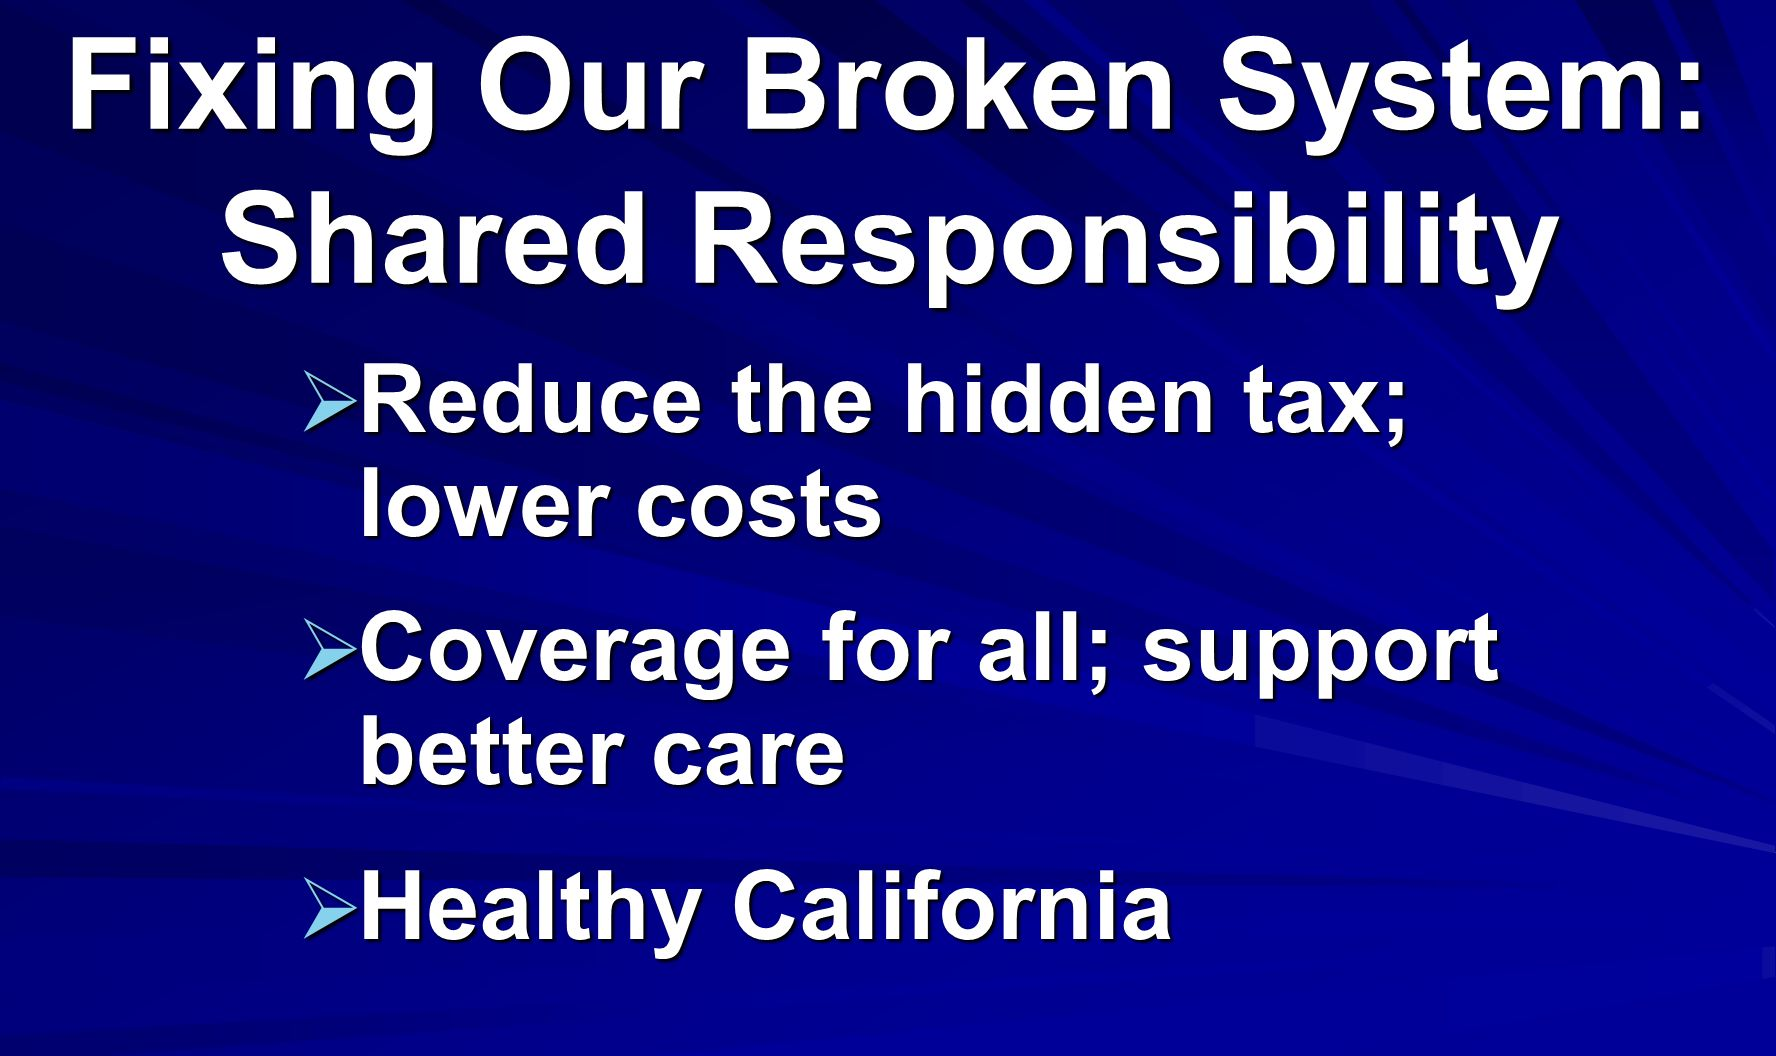 Fixing Our Broken System: Shared Responsibility Reduce the hidden tax; lower costs Reduce the hidden tax; lower costs Coverage for all; support better